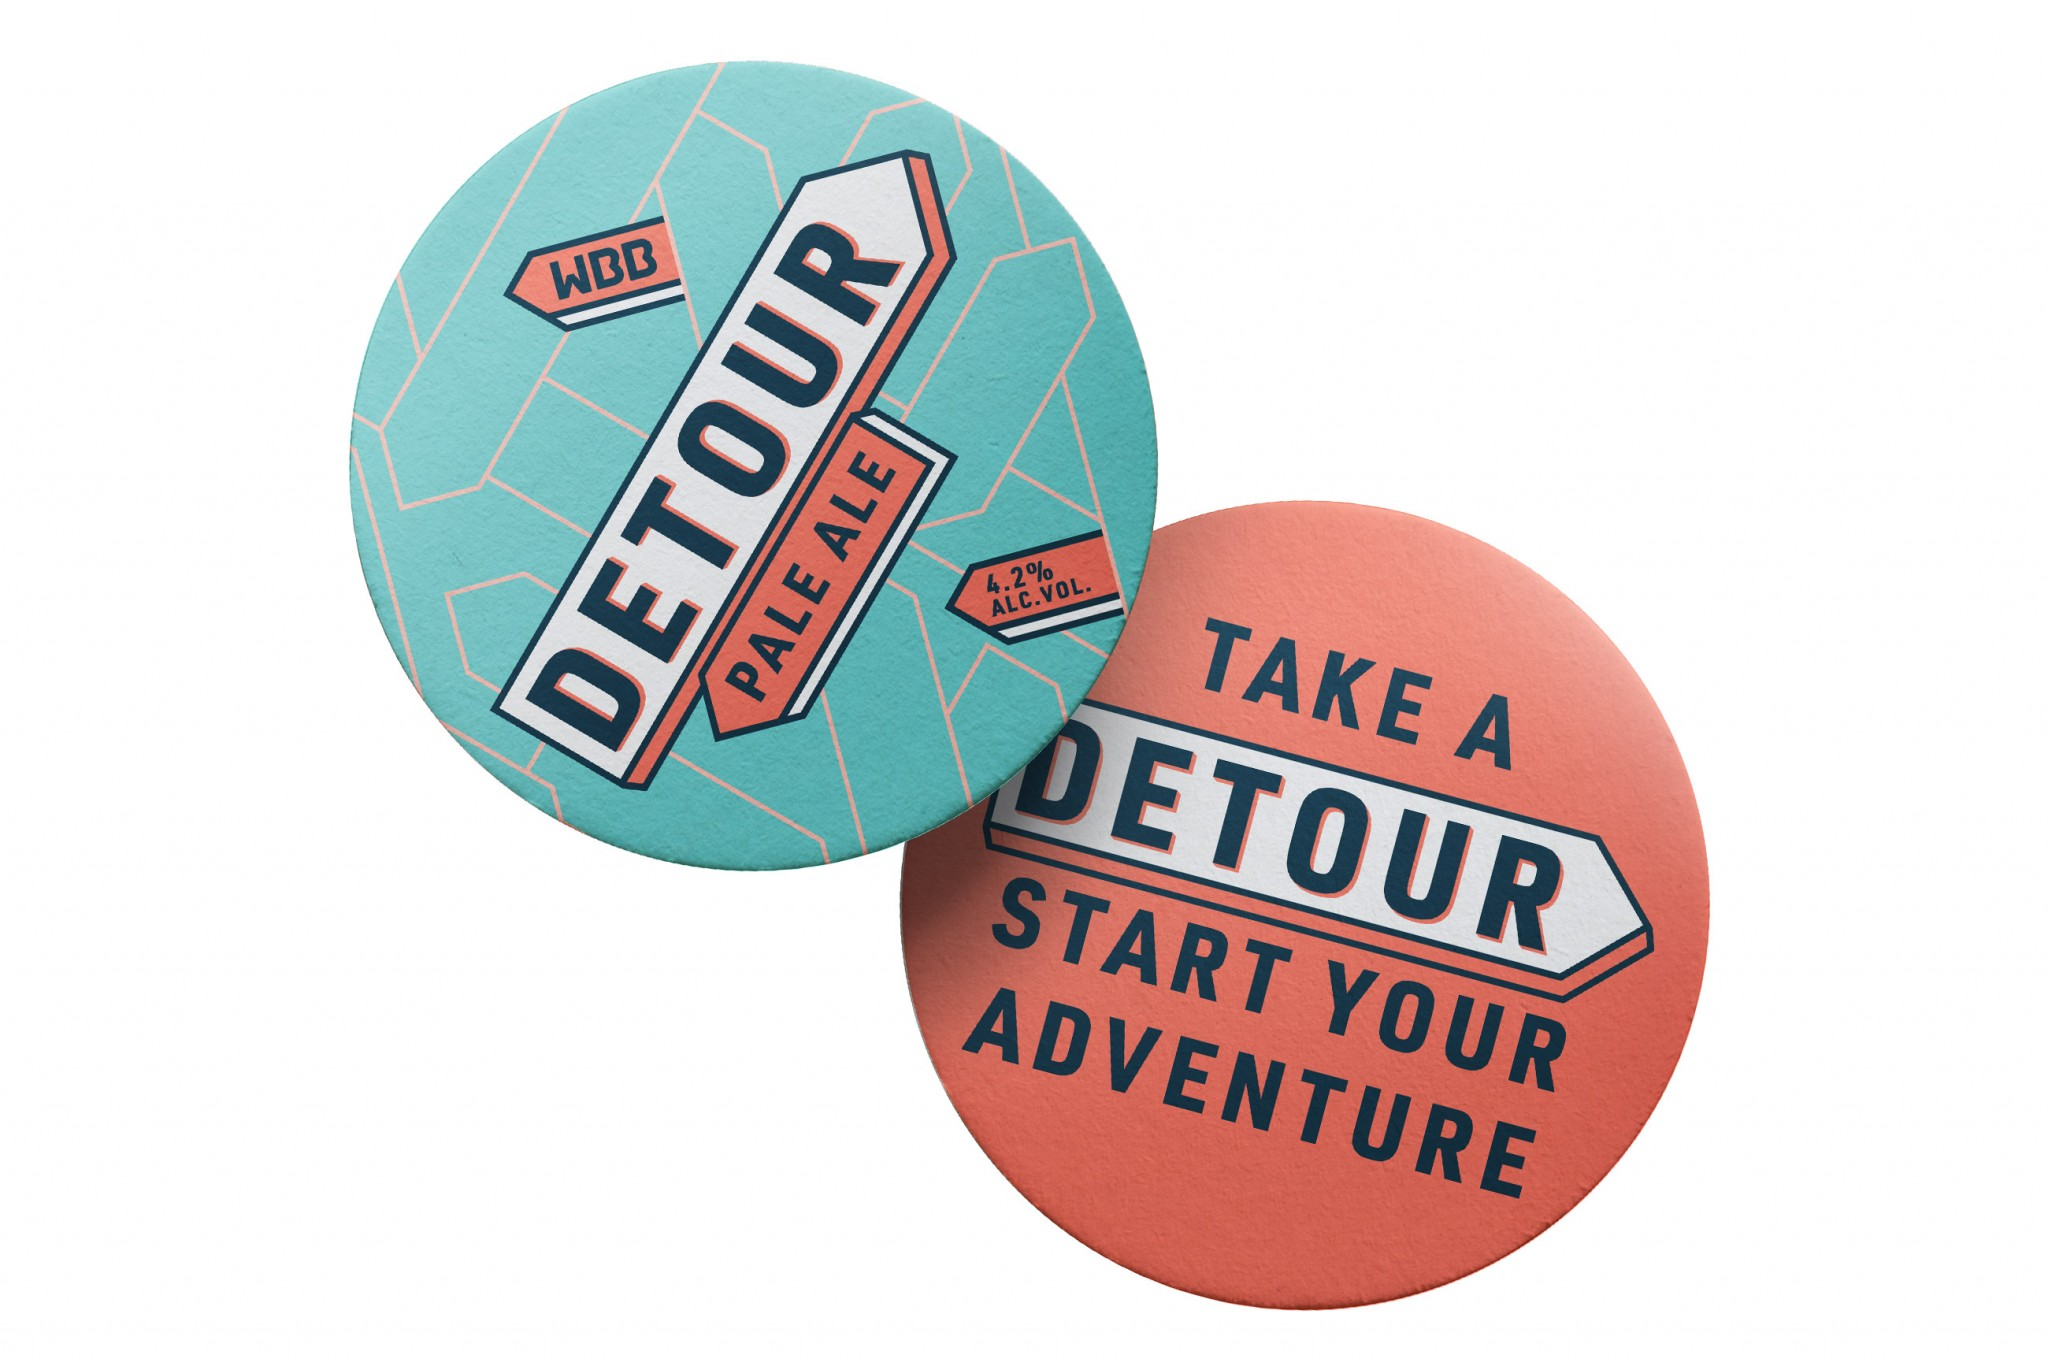 Brand Design for Detour Pale Ale by Thirst Craft